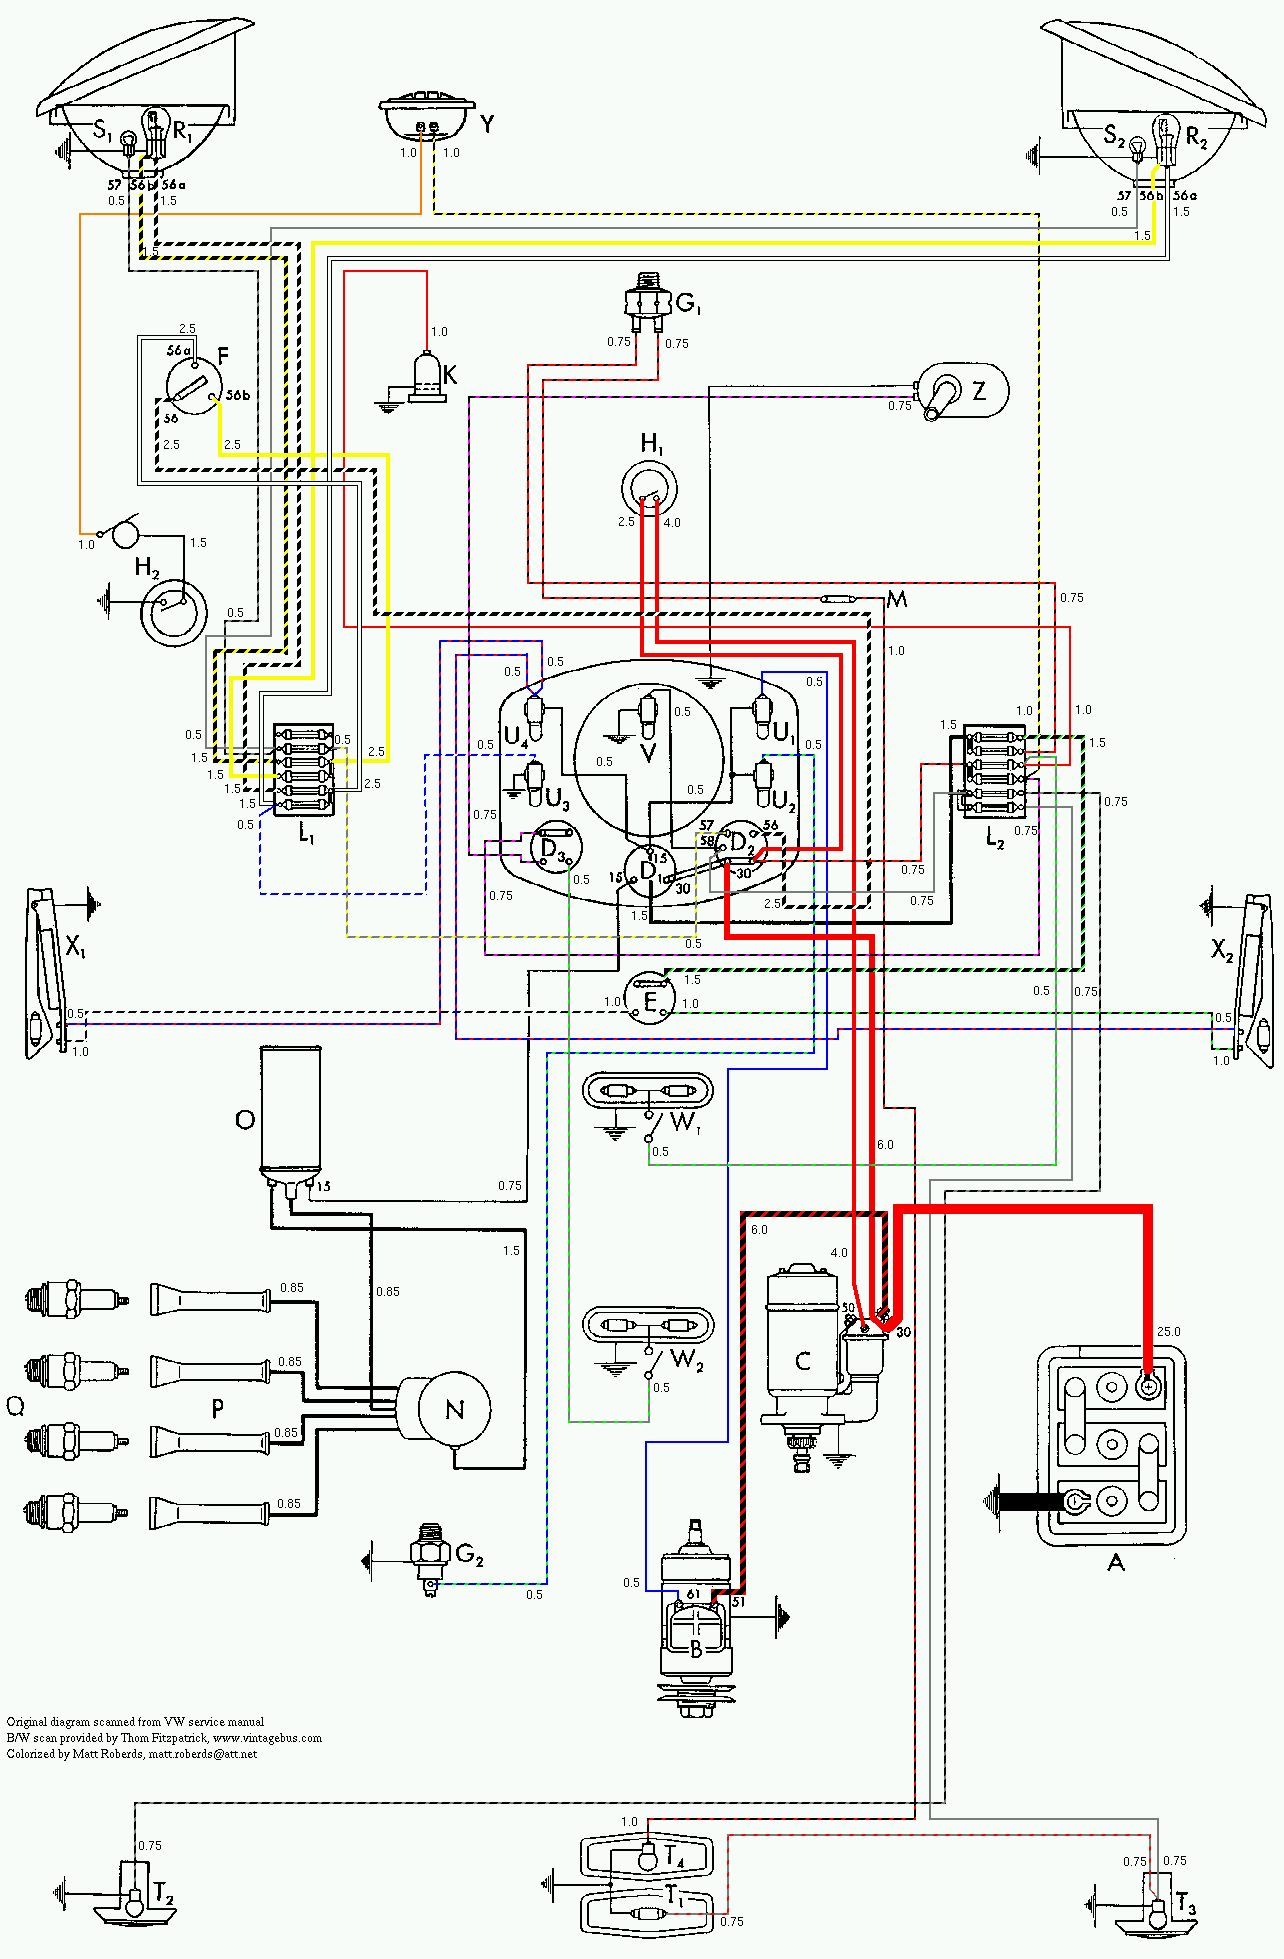 Find Parts besides 1992 Chevy Silverado 1500 Wiring Diagram in addition 2003 Gmc Sonoma Under Dash Fuse Box Diagram besides 1979 Chevy Custom Deluxe Fuse Box together with Chevy Fuse Box 1973. on 1989 chevy fuse box diagram